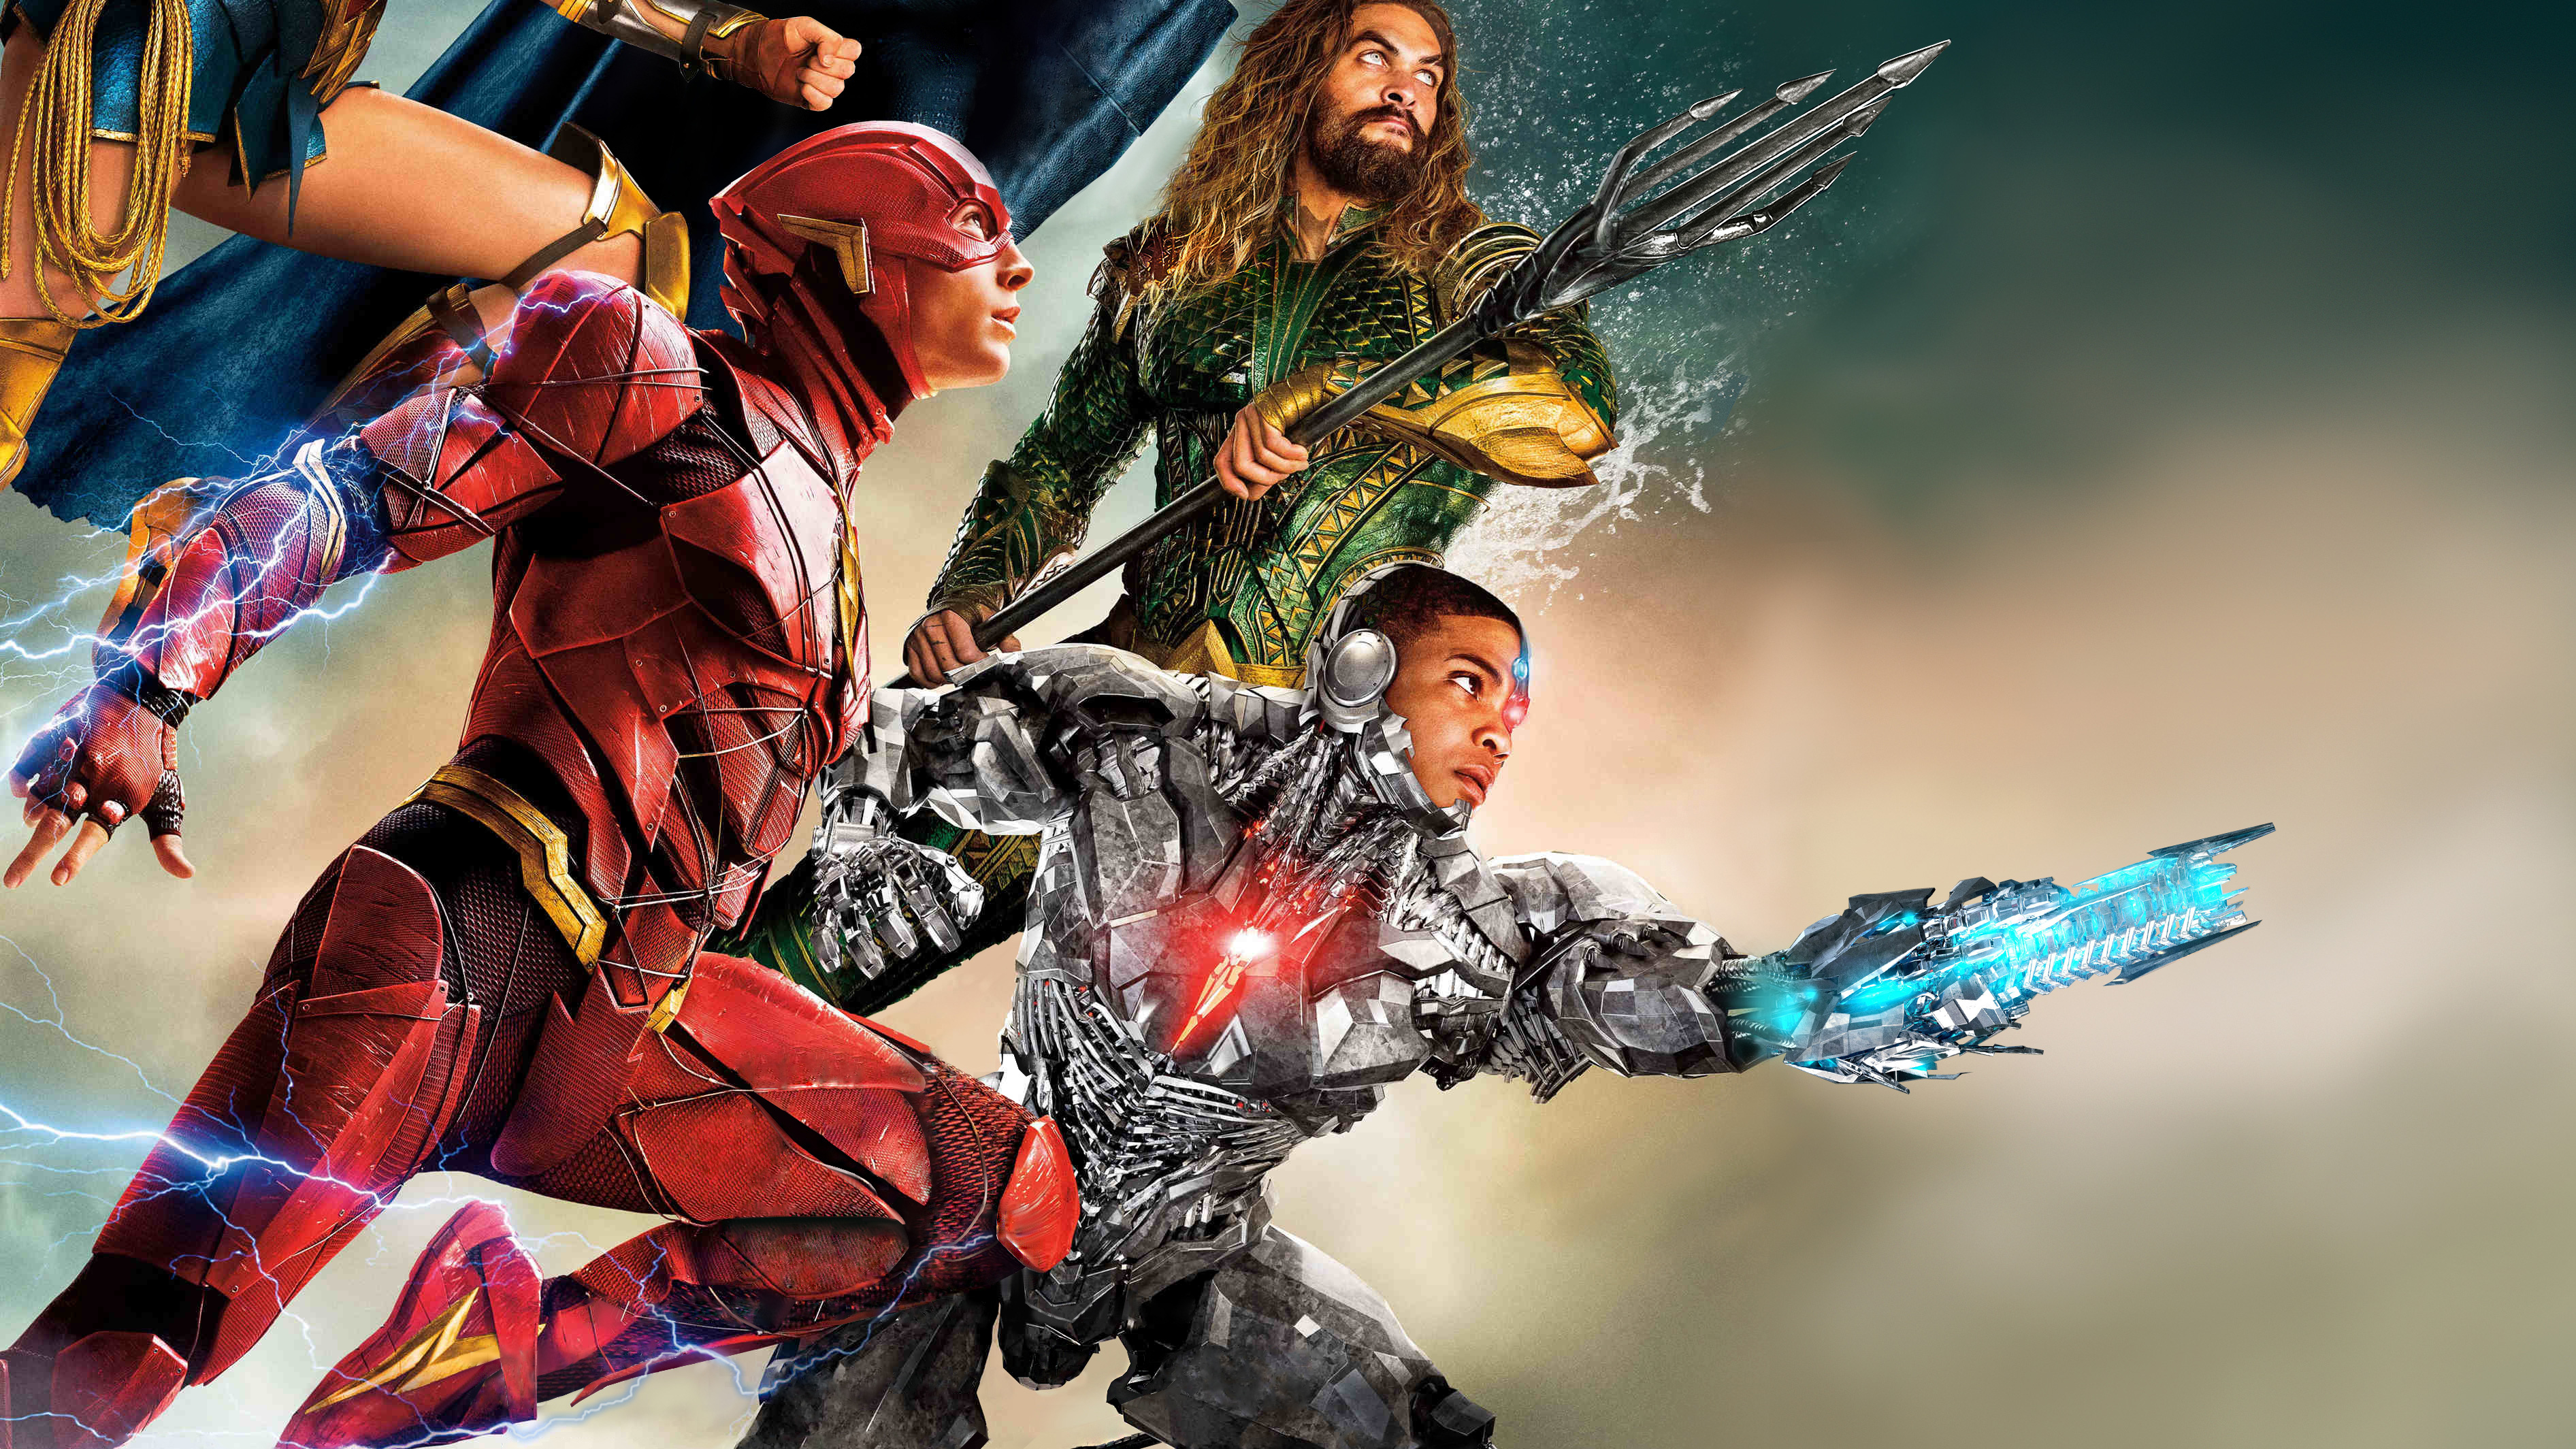 Justice League Movie Hd Movies 4k Wallpapers Images: Flash Cyborg Aquaman Justice League 4k, HD Movies, 4k